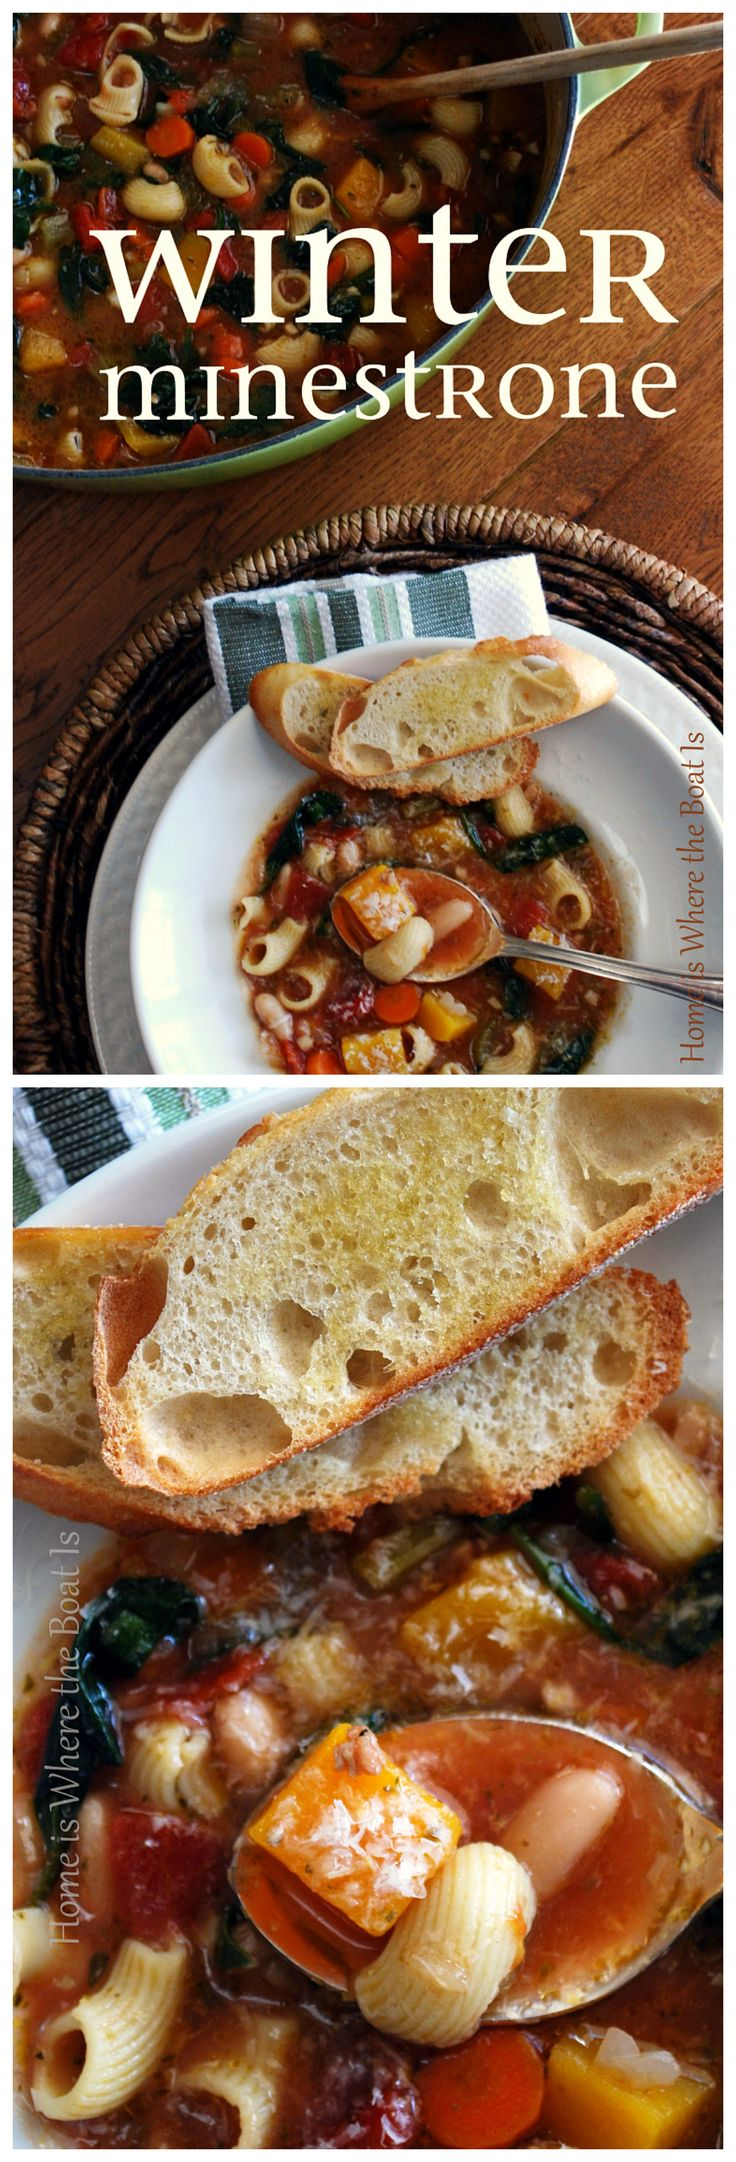 Ina Garten's Winter Minestrone! I can't say enough good things about this soup recipe...foolproof, hearty, comforting, but the proof is in the bowl! | homeiswheretheboatis.net #souprecipe #barefootcontessa #minestrone